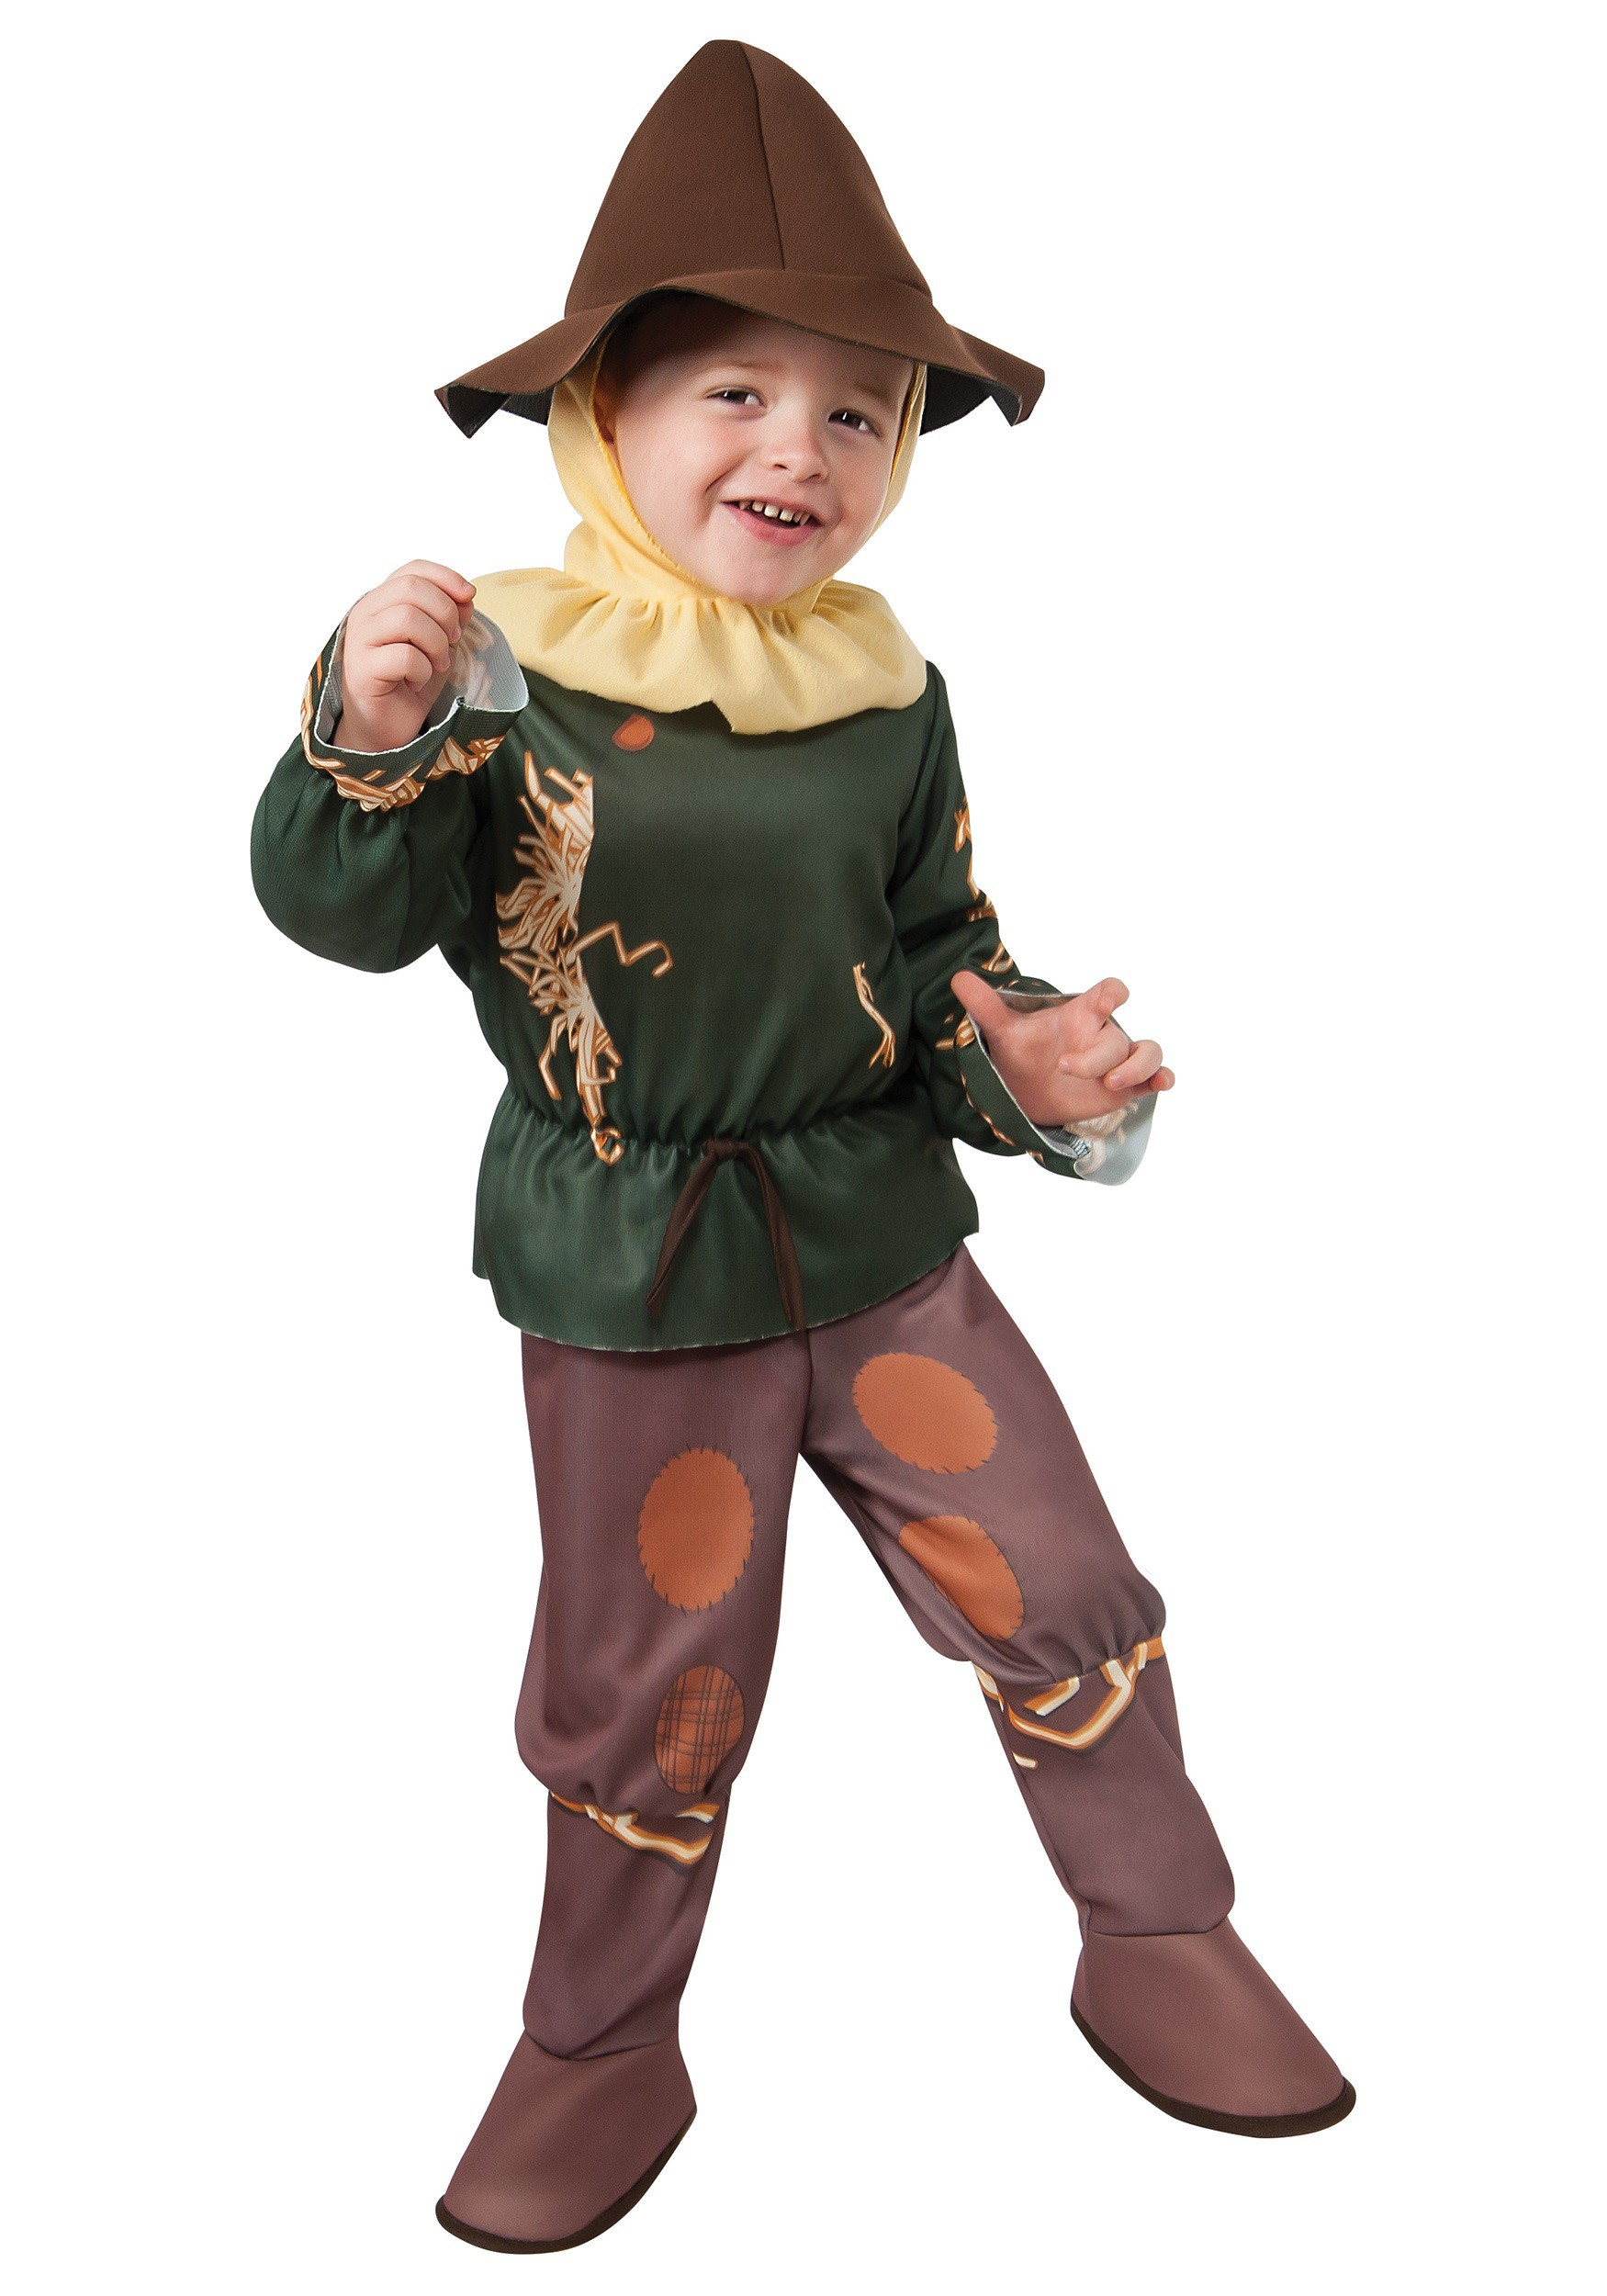 Kids Farmer Costume Family Halloween Costume Ideas Group Costume